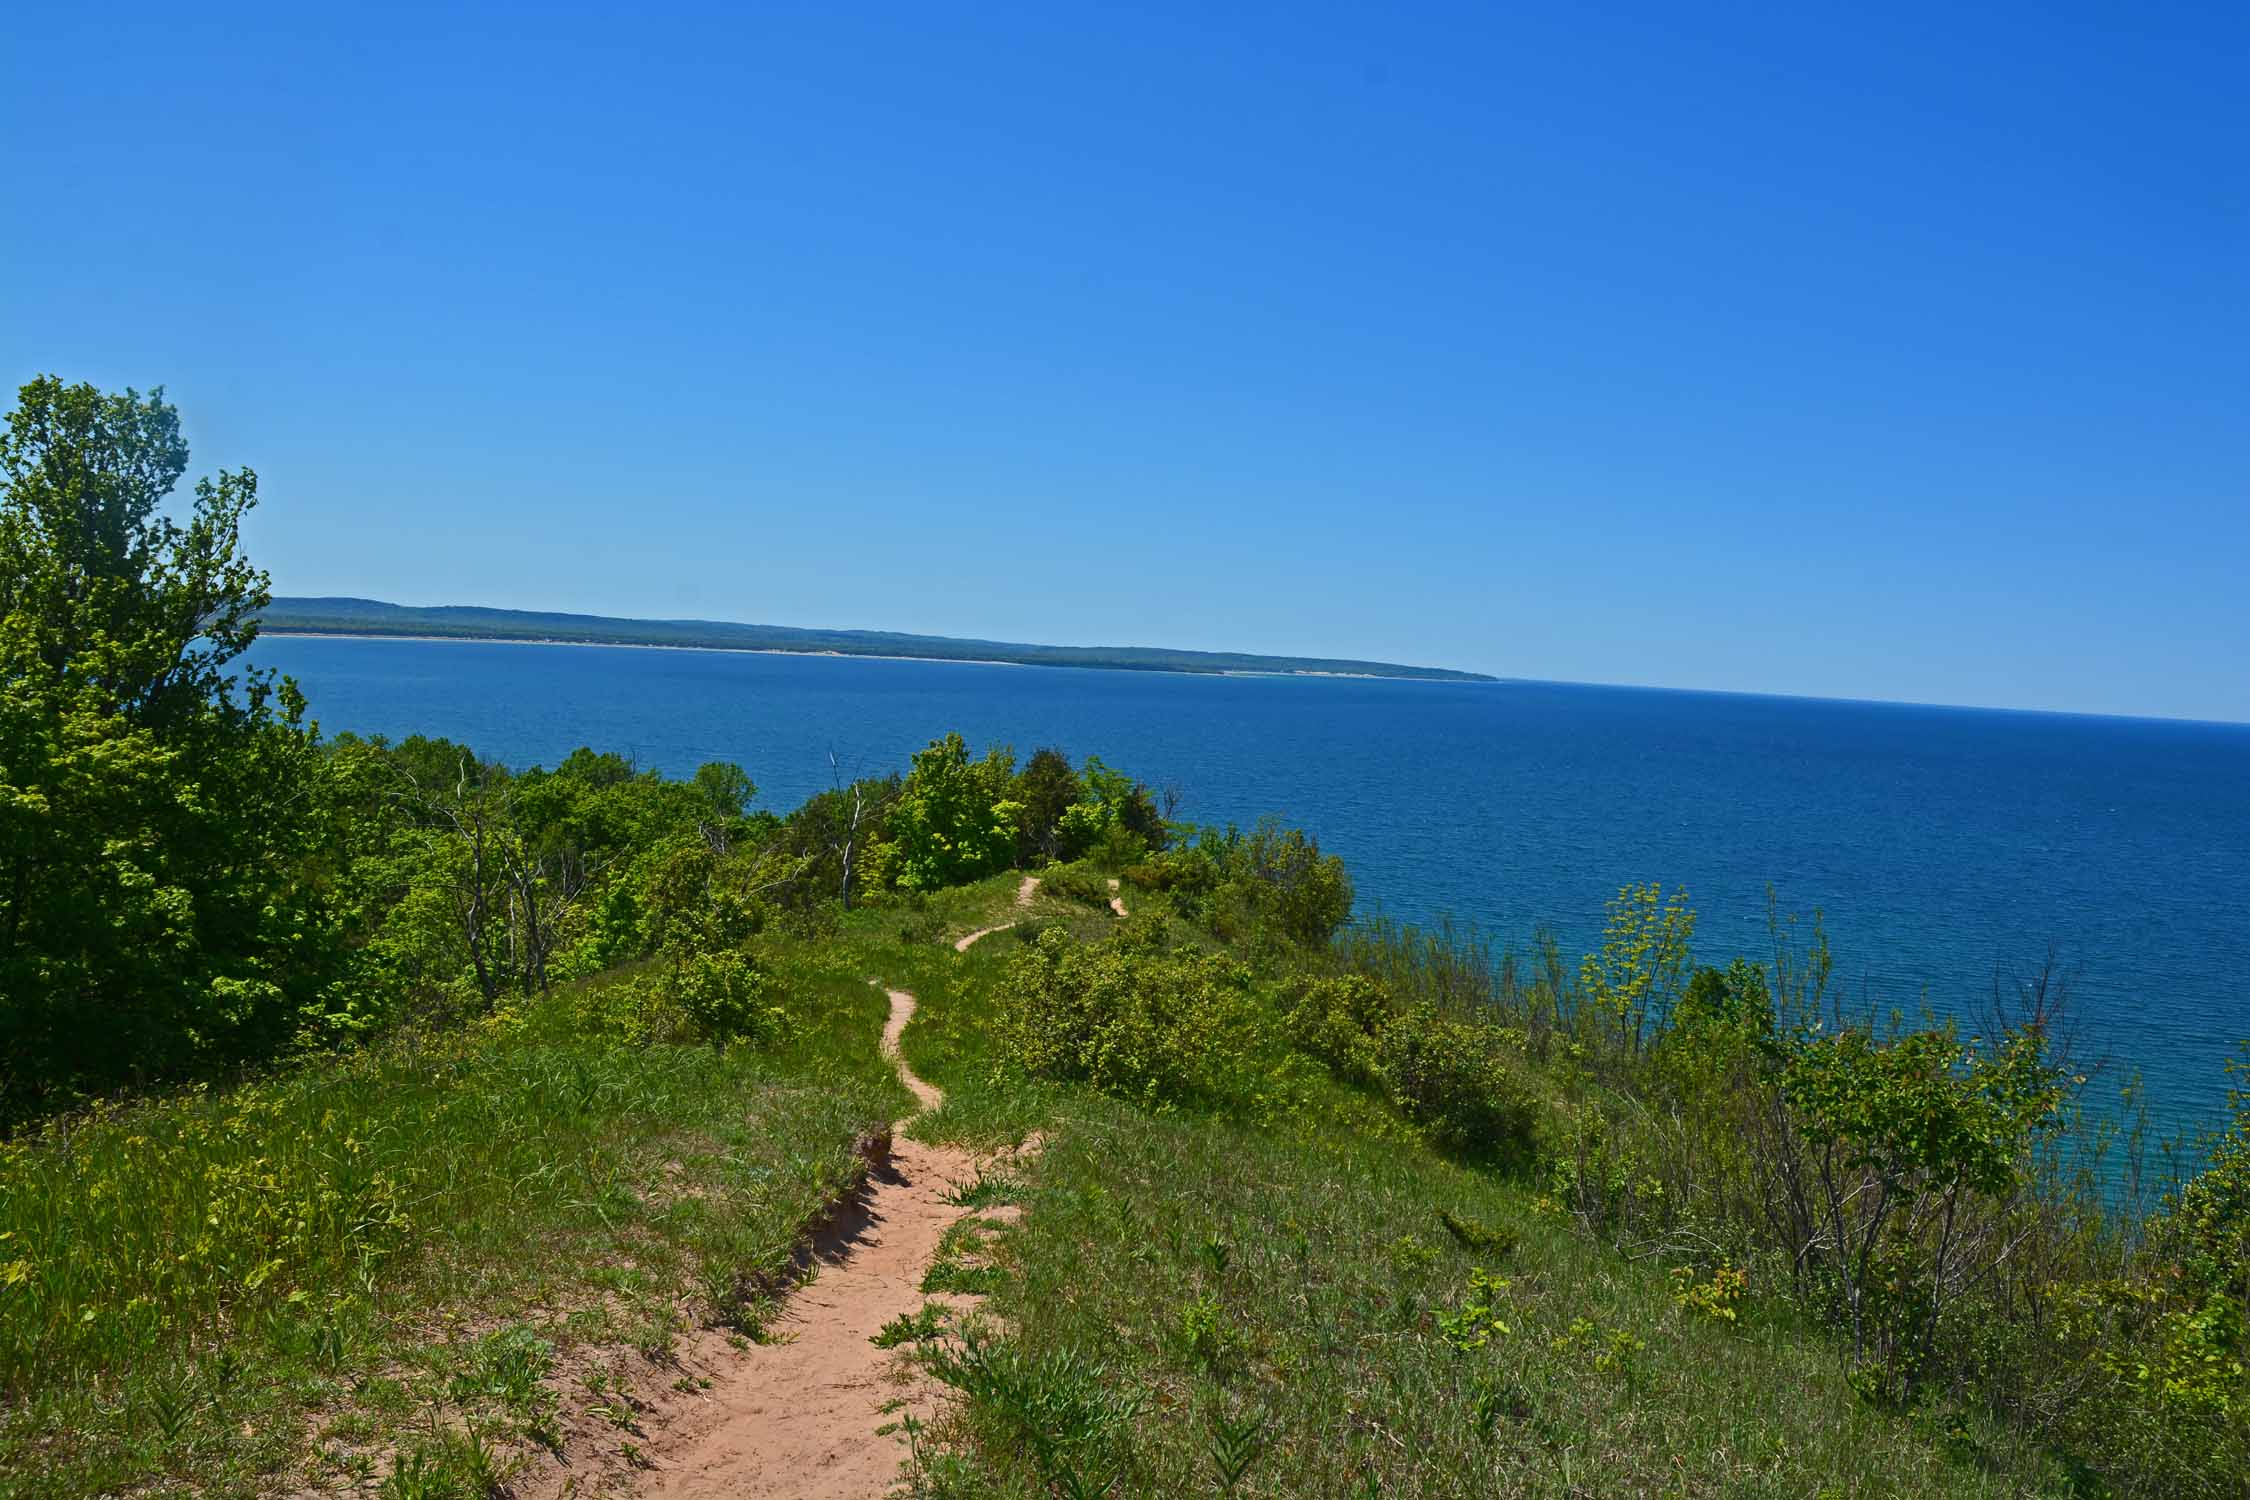 The hike over the dunes has fantasic views